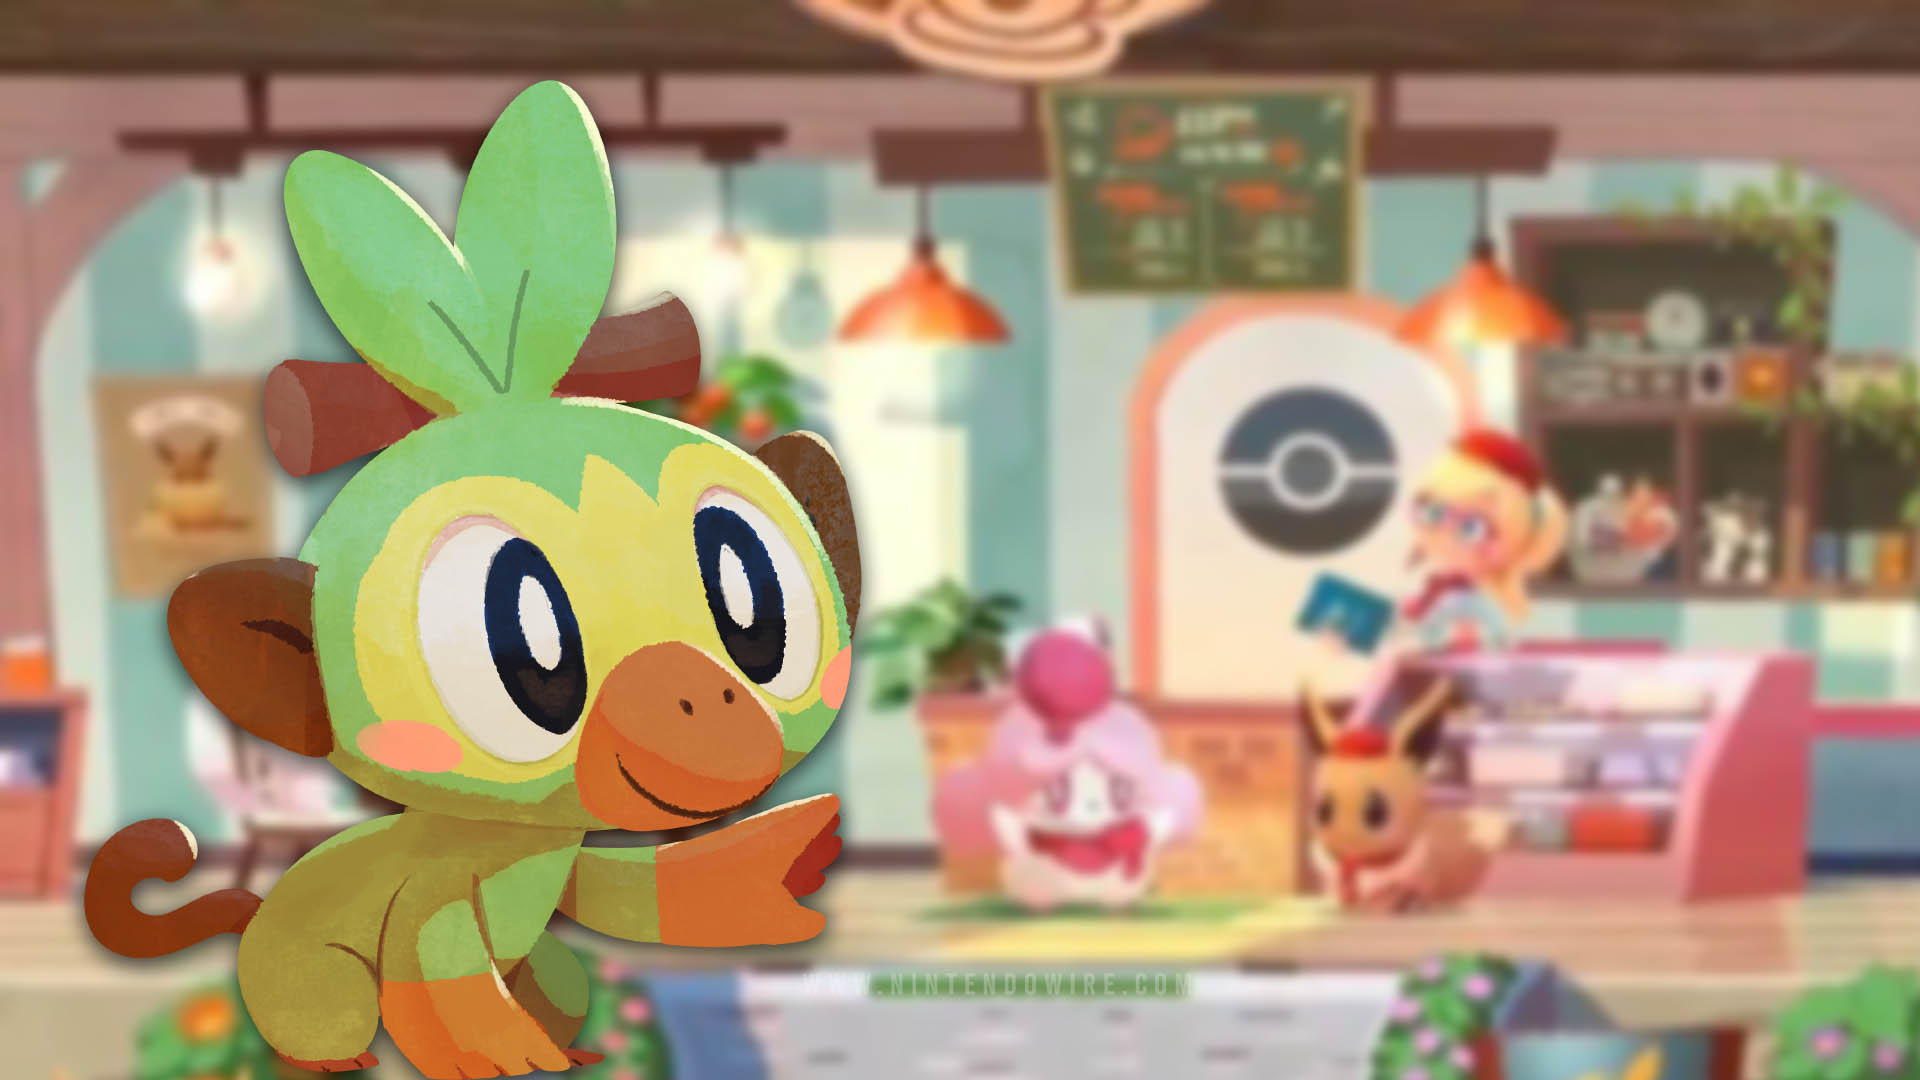 Pokemon Cafe Mix S Next Special Visitor Is Grookey Nintendo Wire The first pokemon sword/shield grookey papercraft this amazing cute papercraft template is 22 cm tall and has 5 pag. pokemon cafe mix s next special visitor